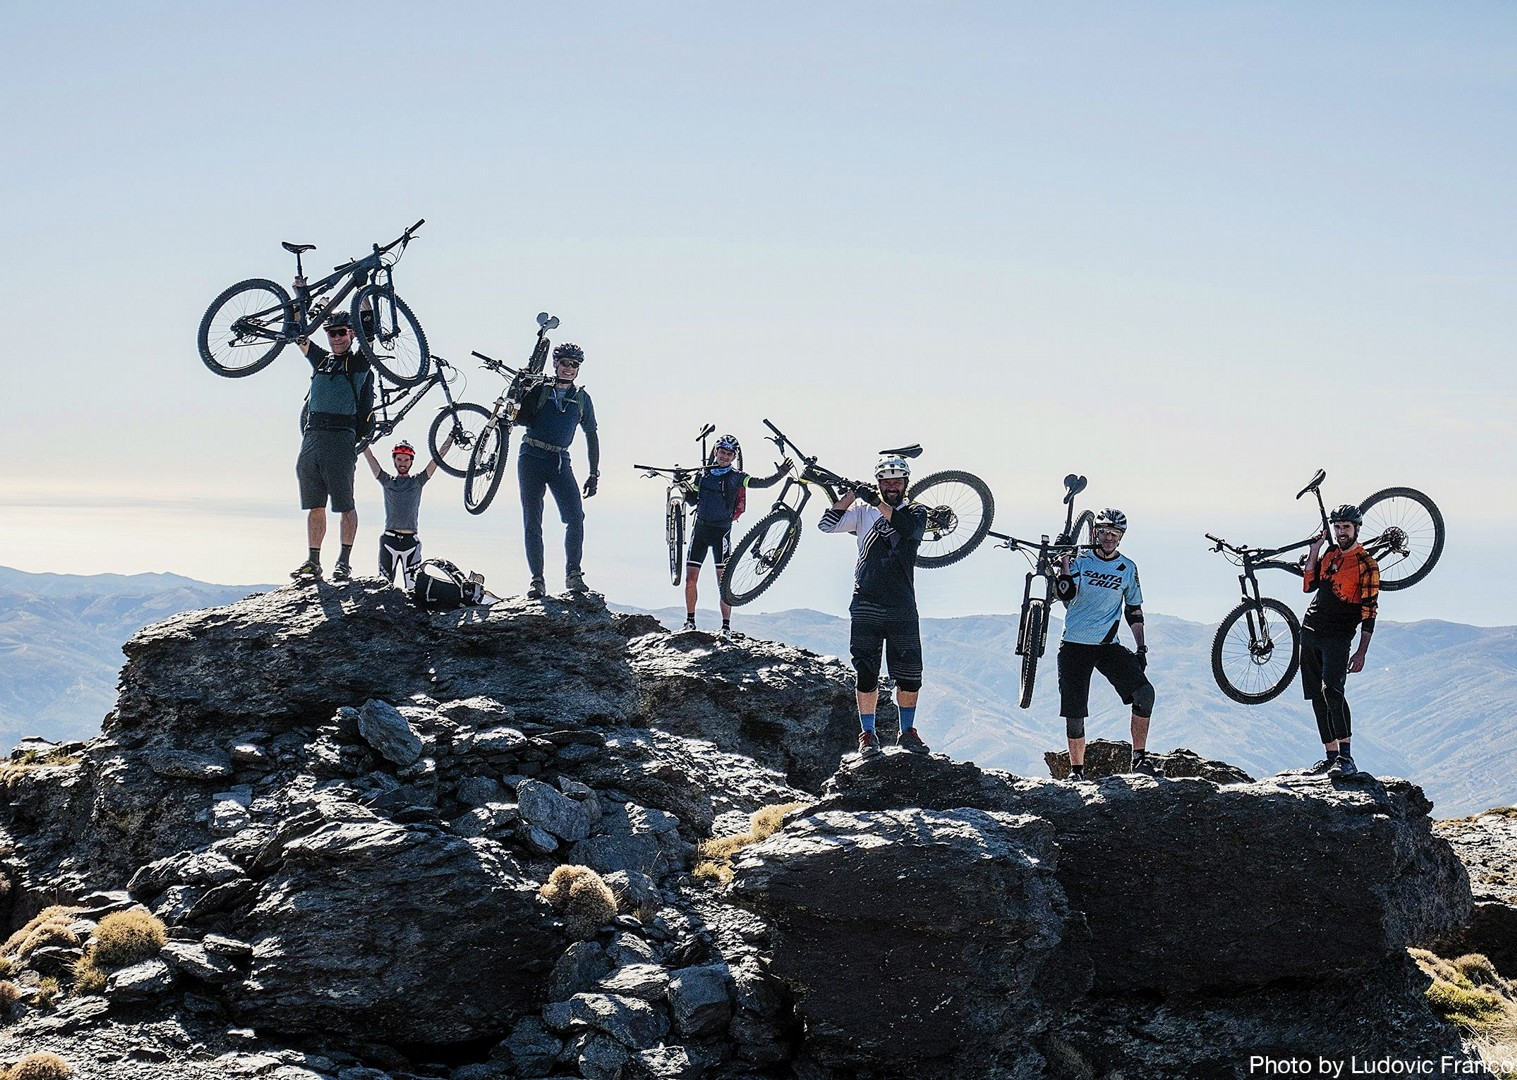 sensational-sierra-nevada-spain-guided-mountain-bike-holiday.jpg - Spain - Sensational Sierra Nevada - Mountain Biking